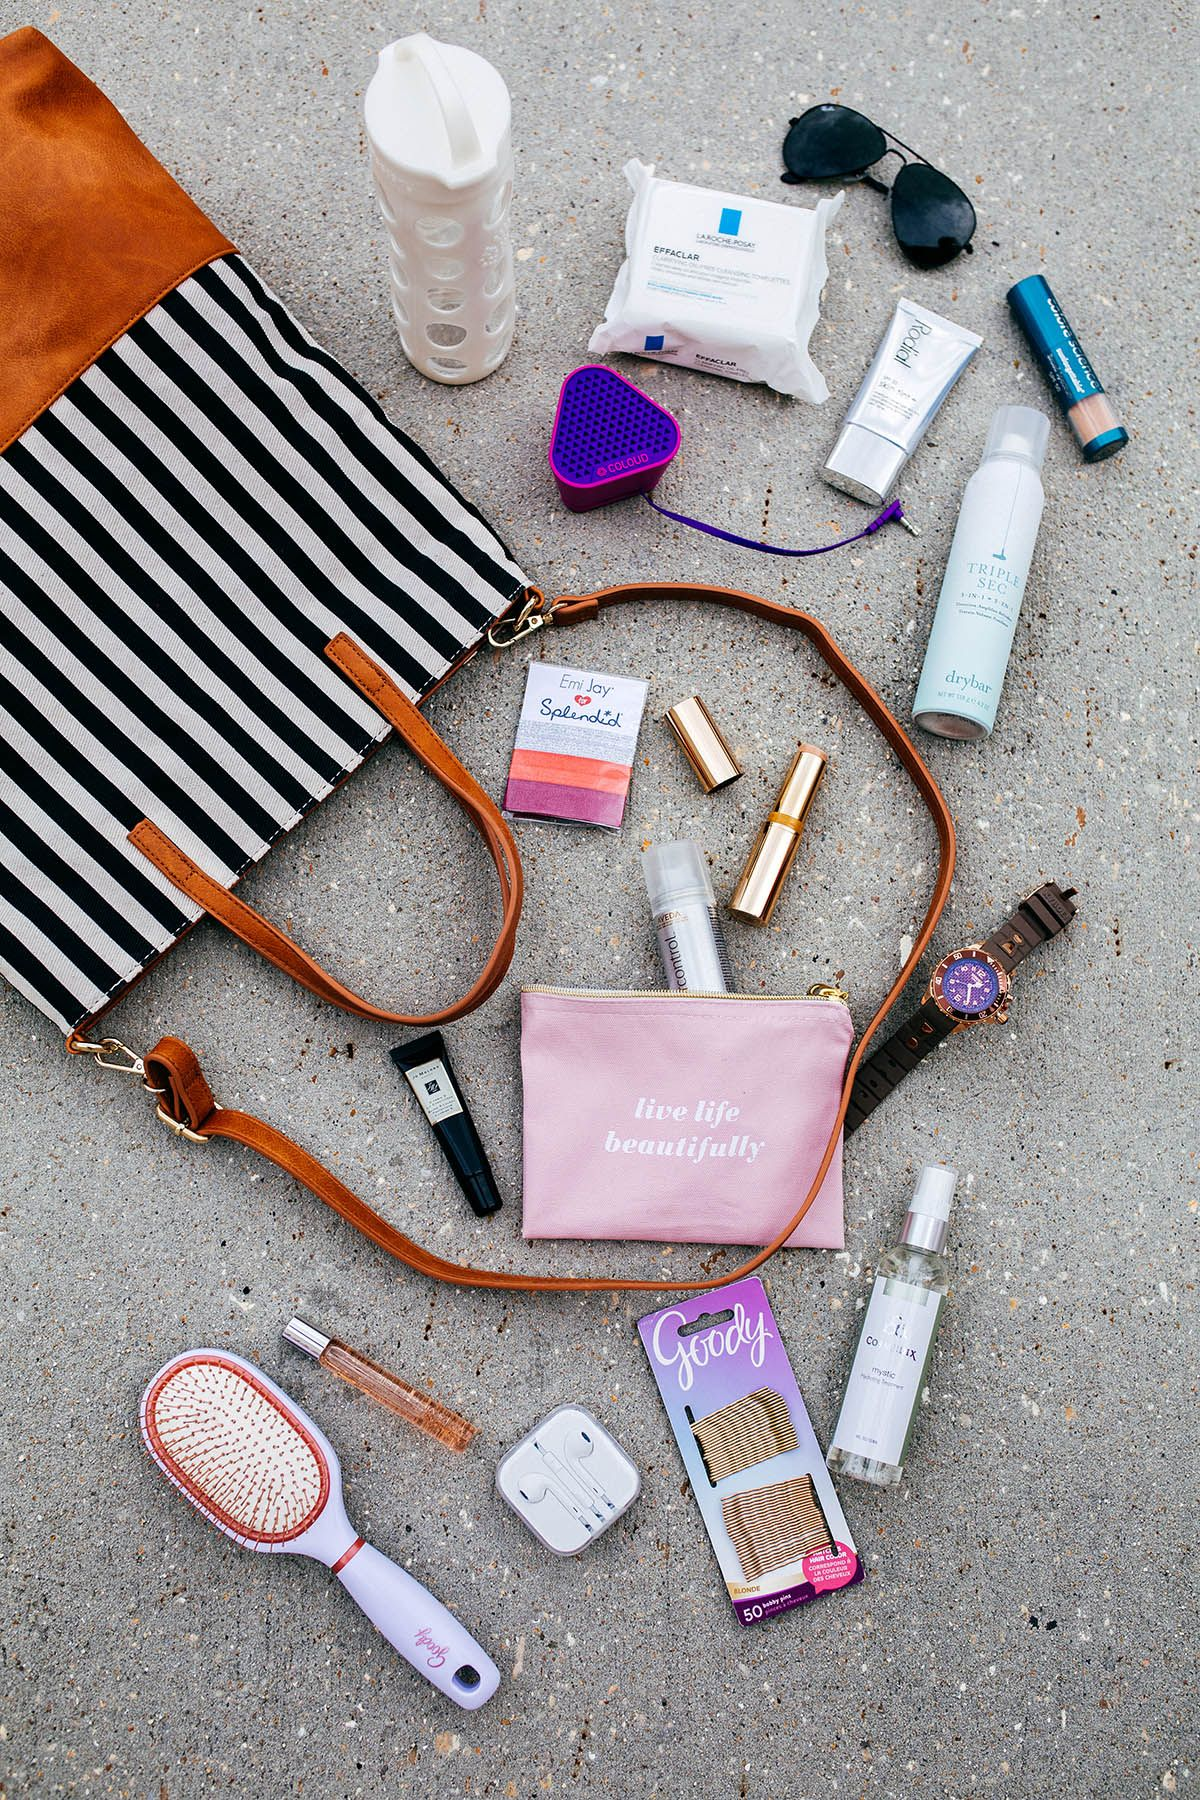 Gym Bag Beauty Products Beauty essentials, Gym bag